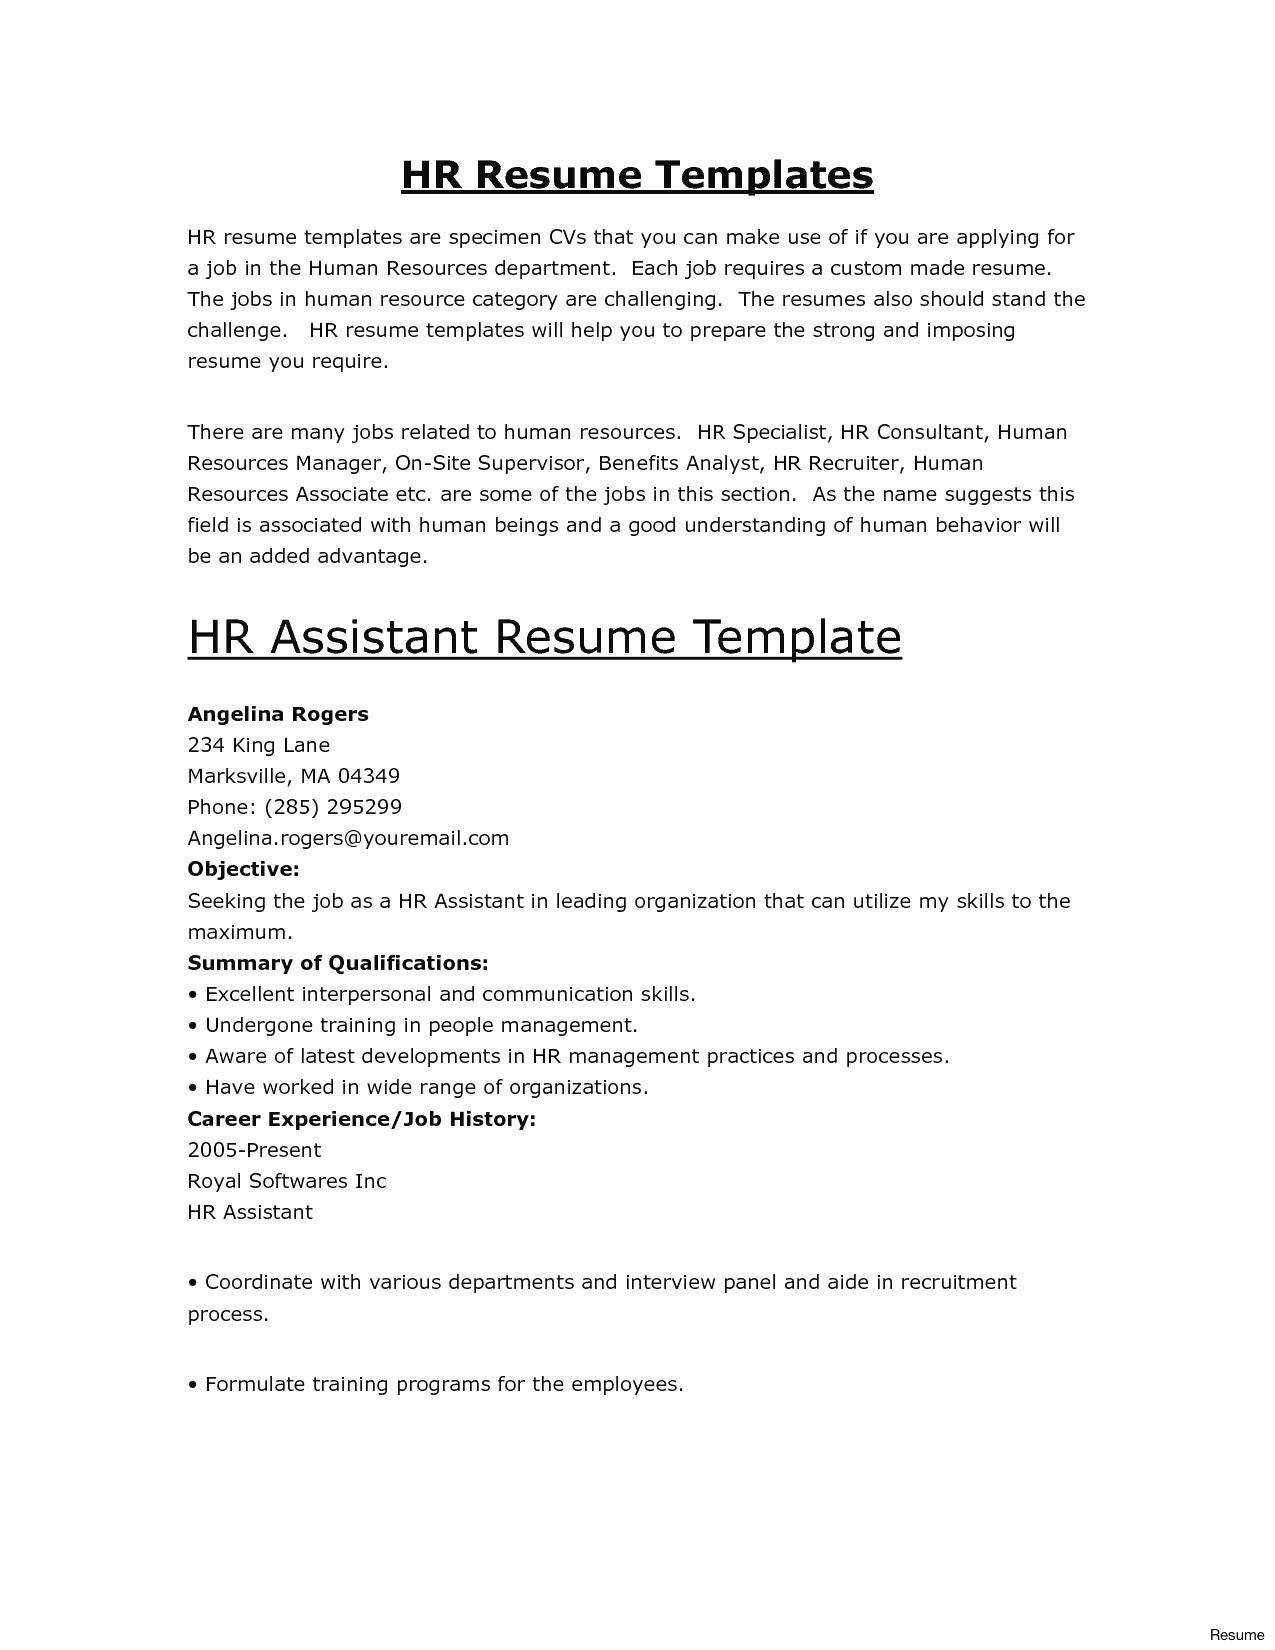 paralegal resume template Collection-Paralegal Resume Examples 23 Paralegal Resume Examples 20-j